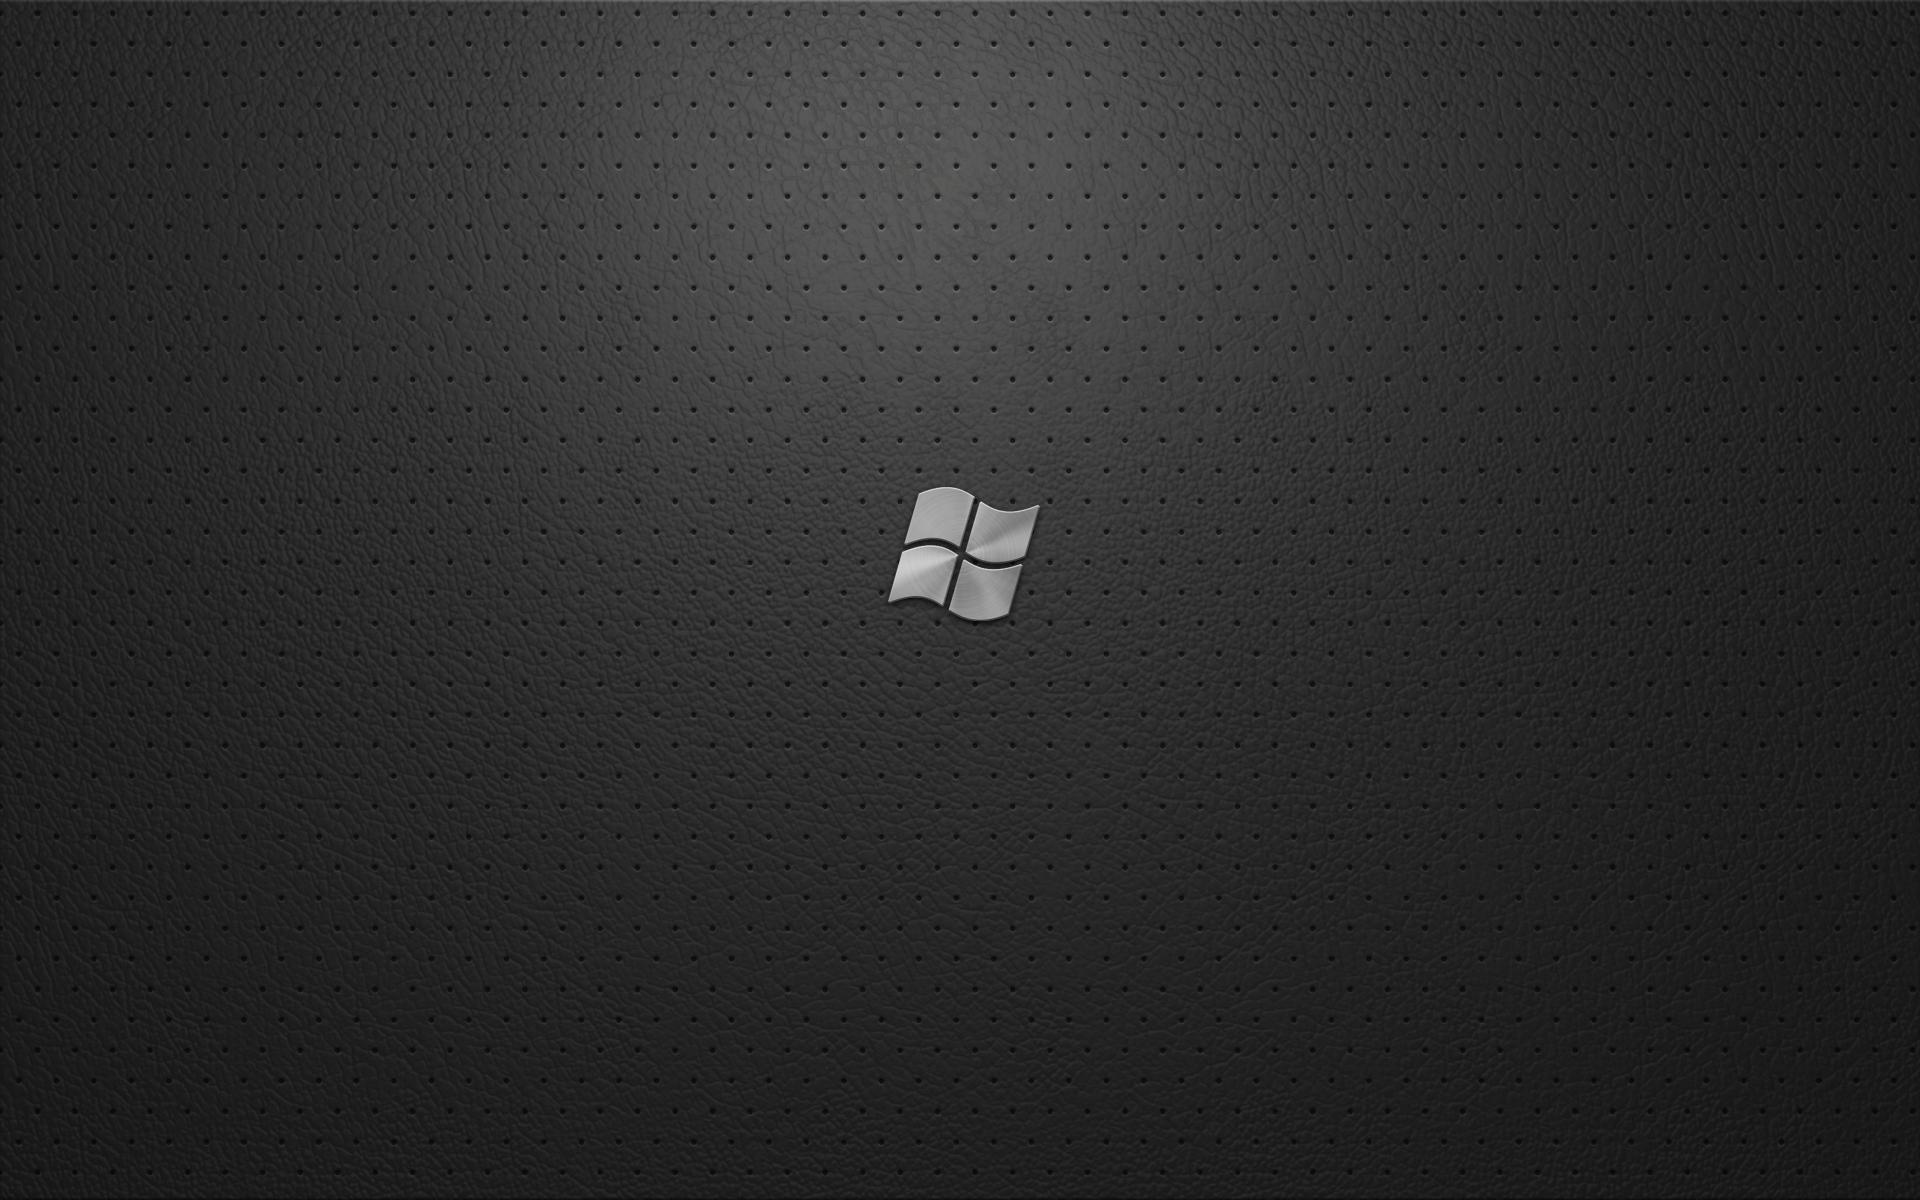 window 7 black wallpaper - photo #33